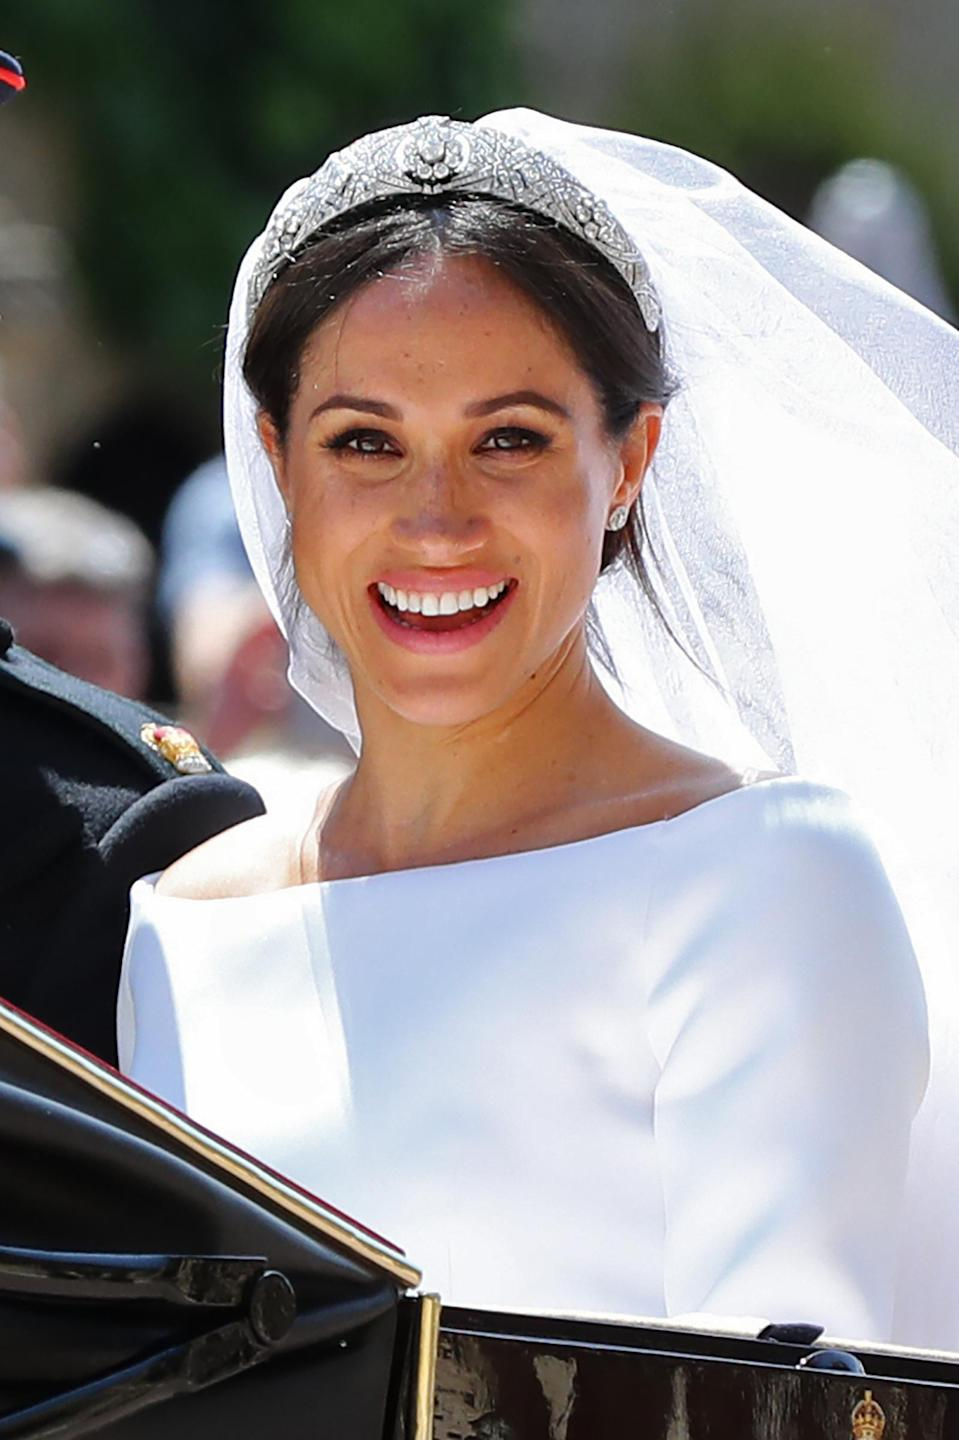 Meghan Markle on her wedding day. (Photo: Getty Images)